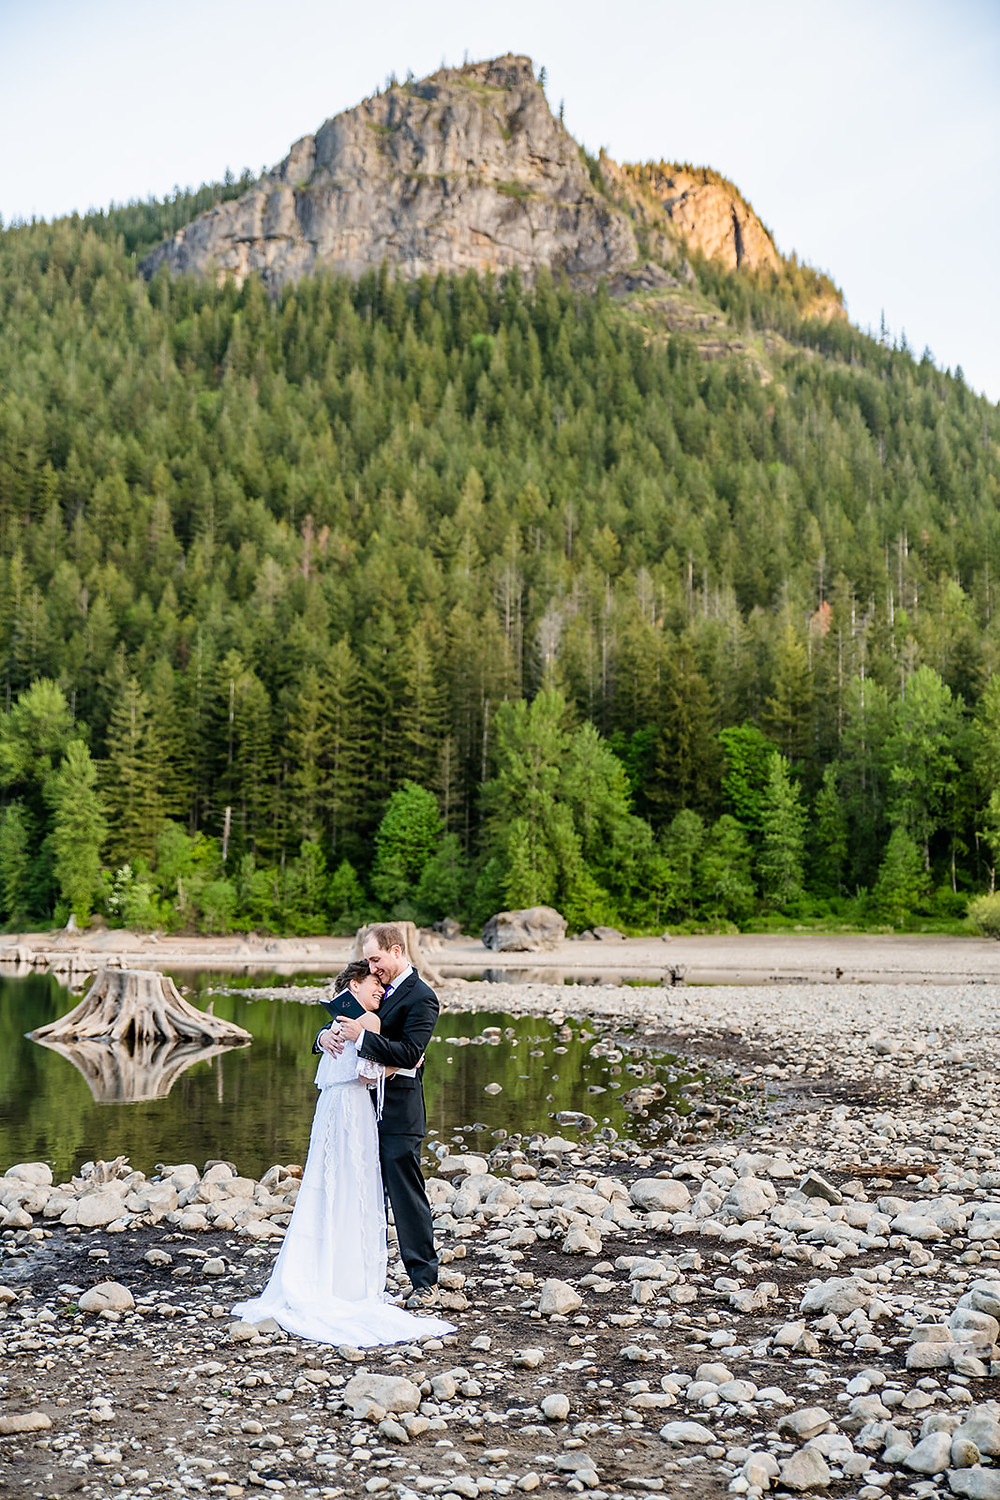 Top places to have an adventure elopement, Washinton